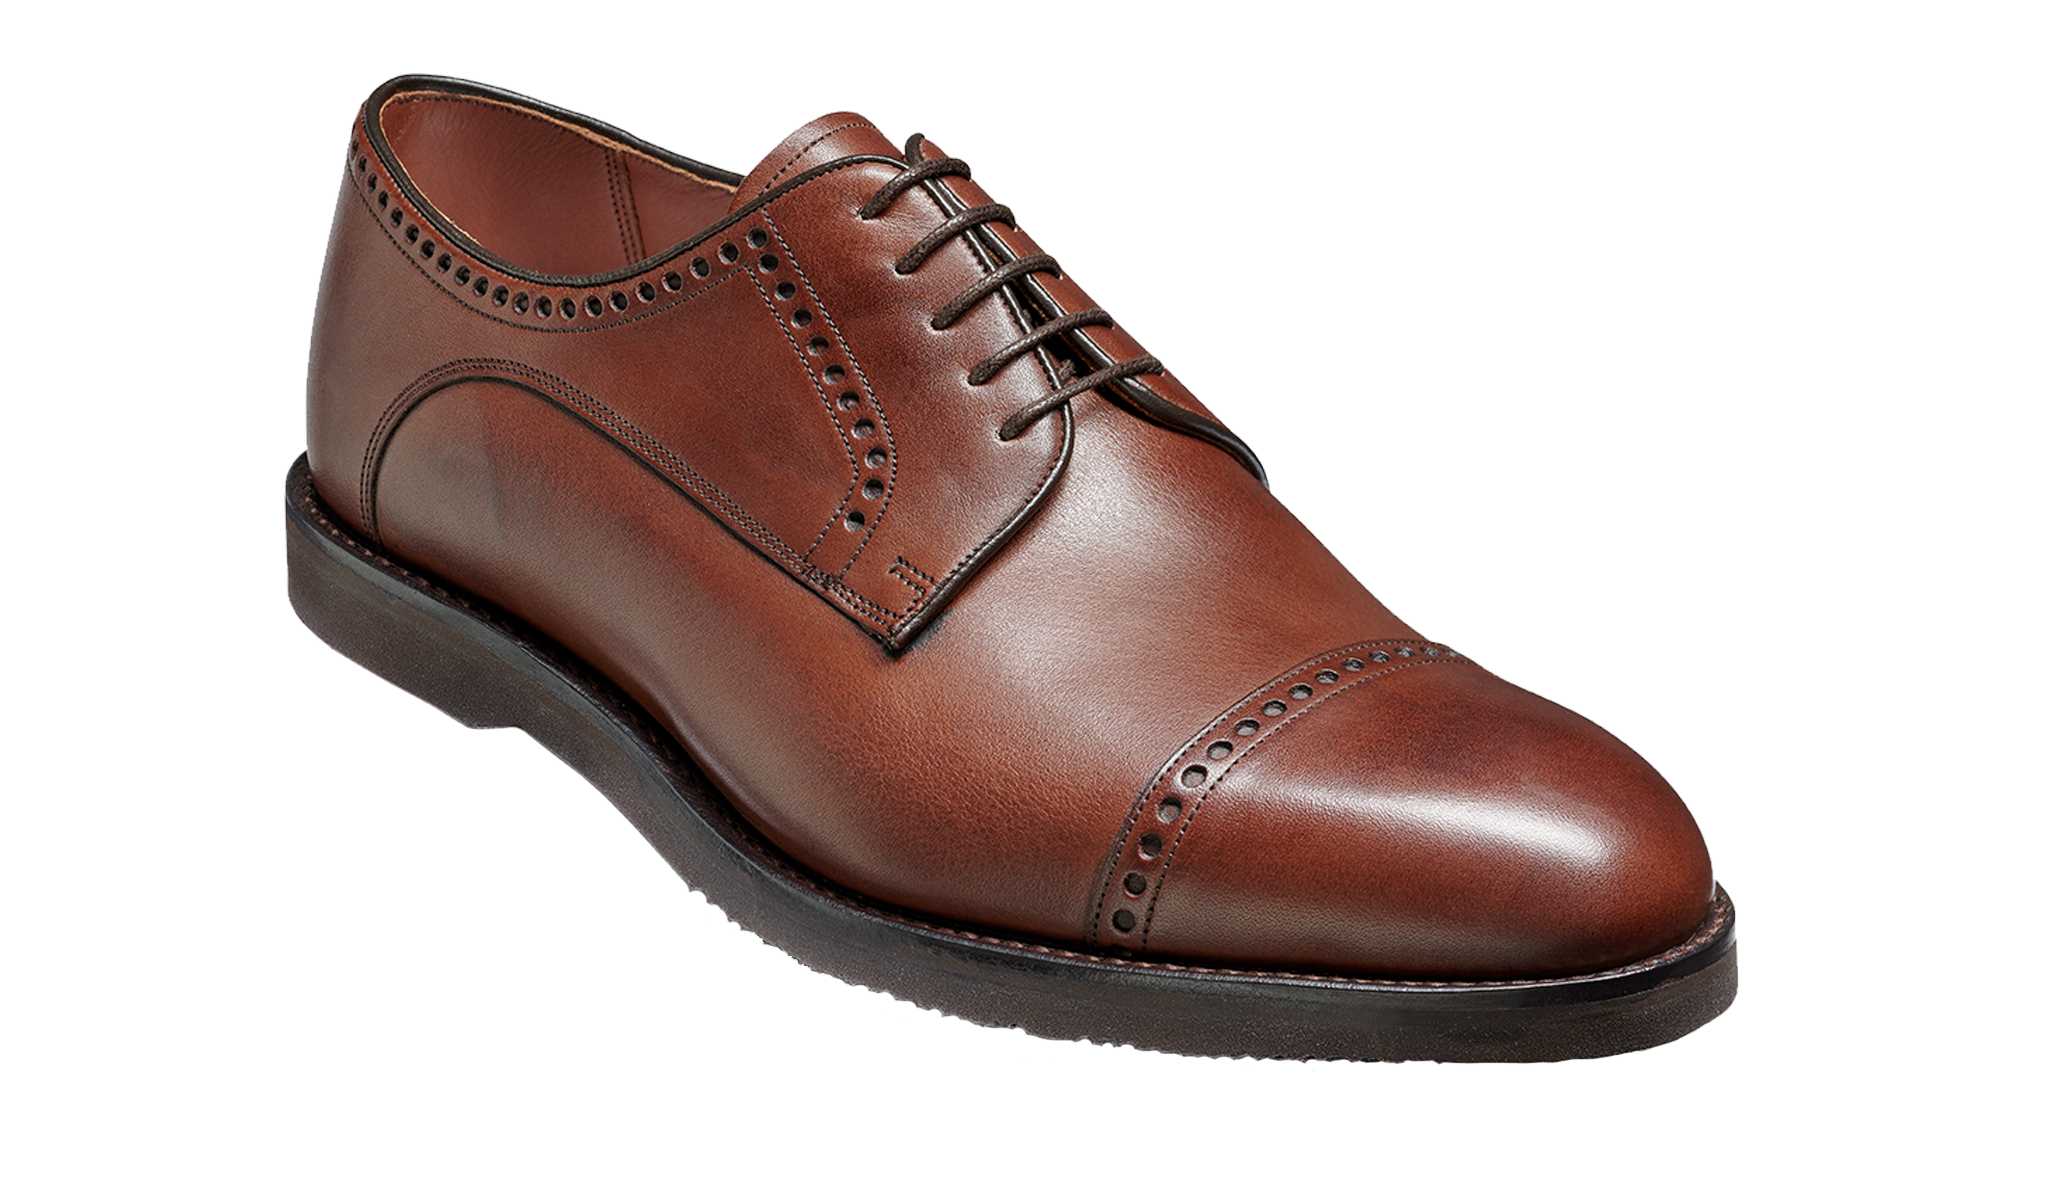 Marcus - Men's Handmade Brown Leather Brogue Derby From Barker